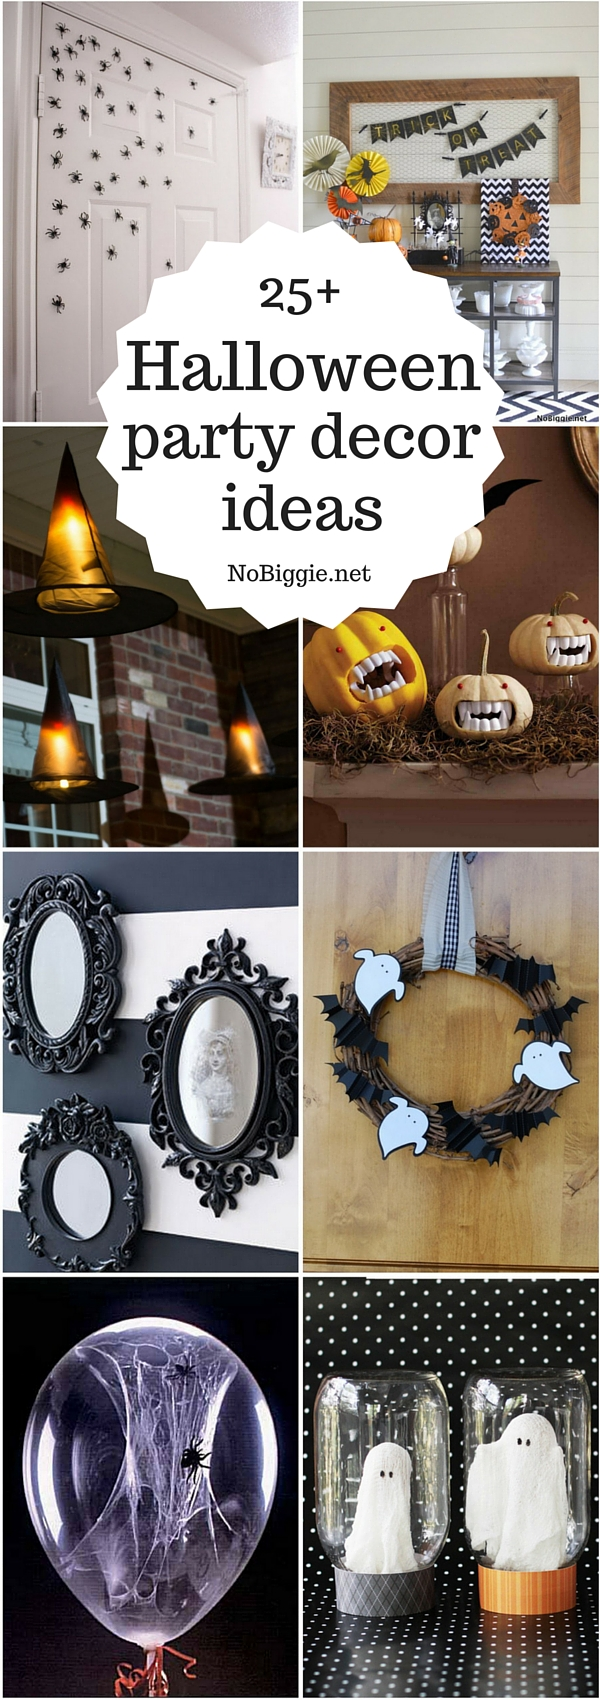 25+ Halloween party decor ideas | NoBiggie.net